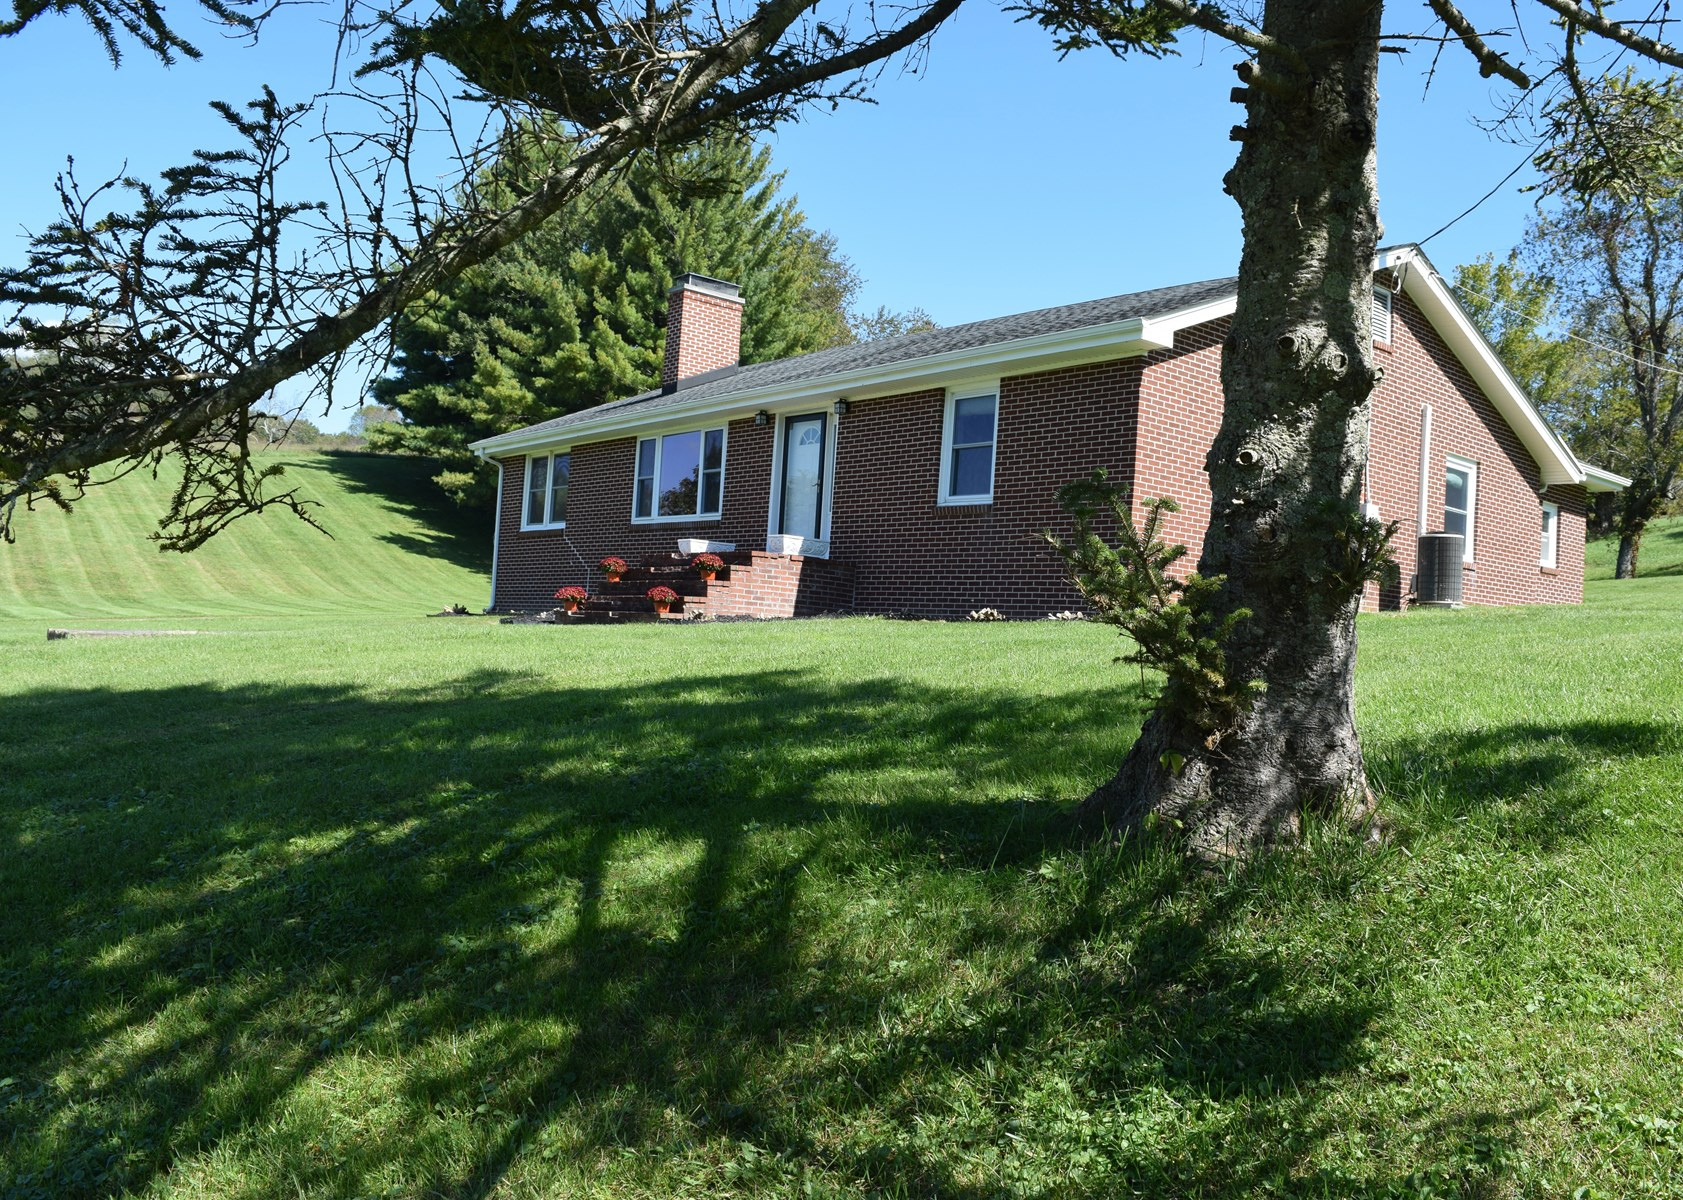 Country Home for Sale in Copper Hill VA!